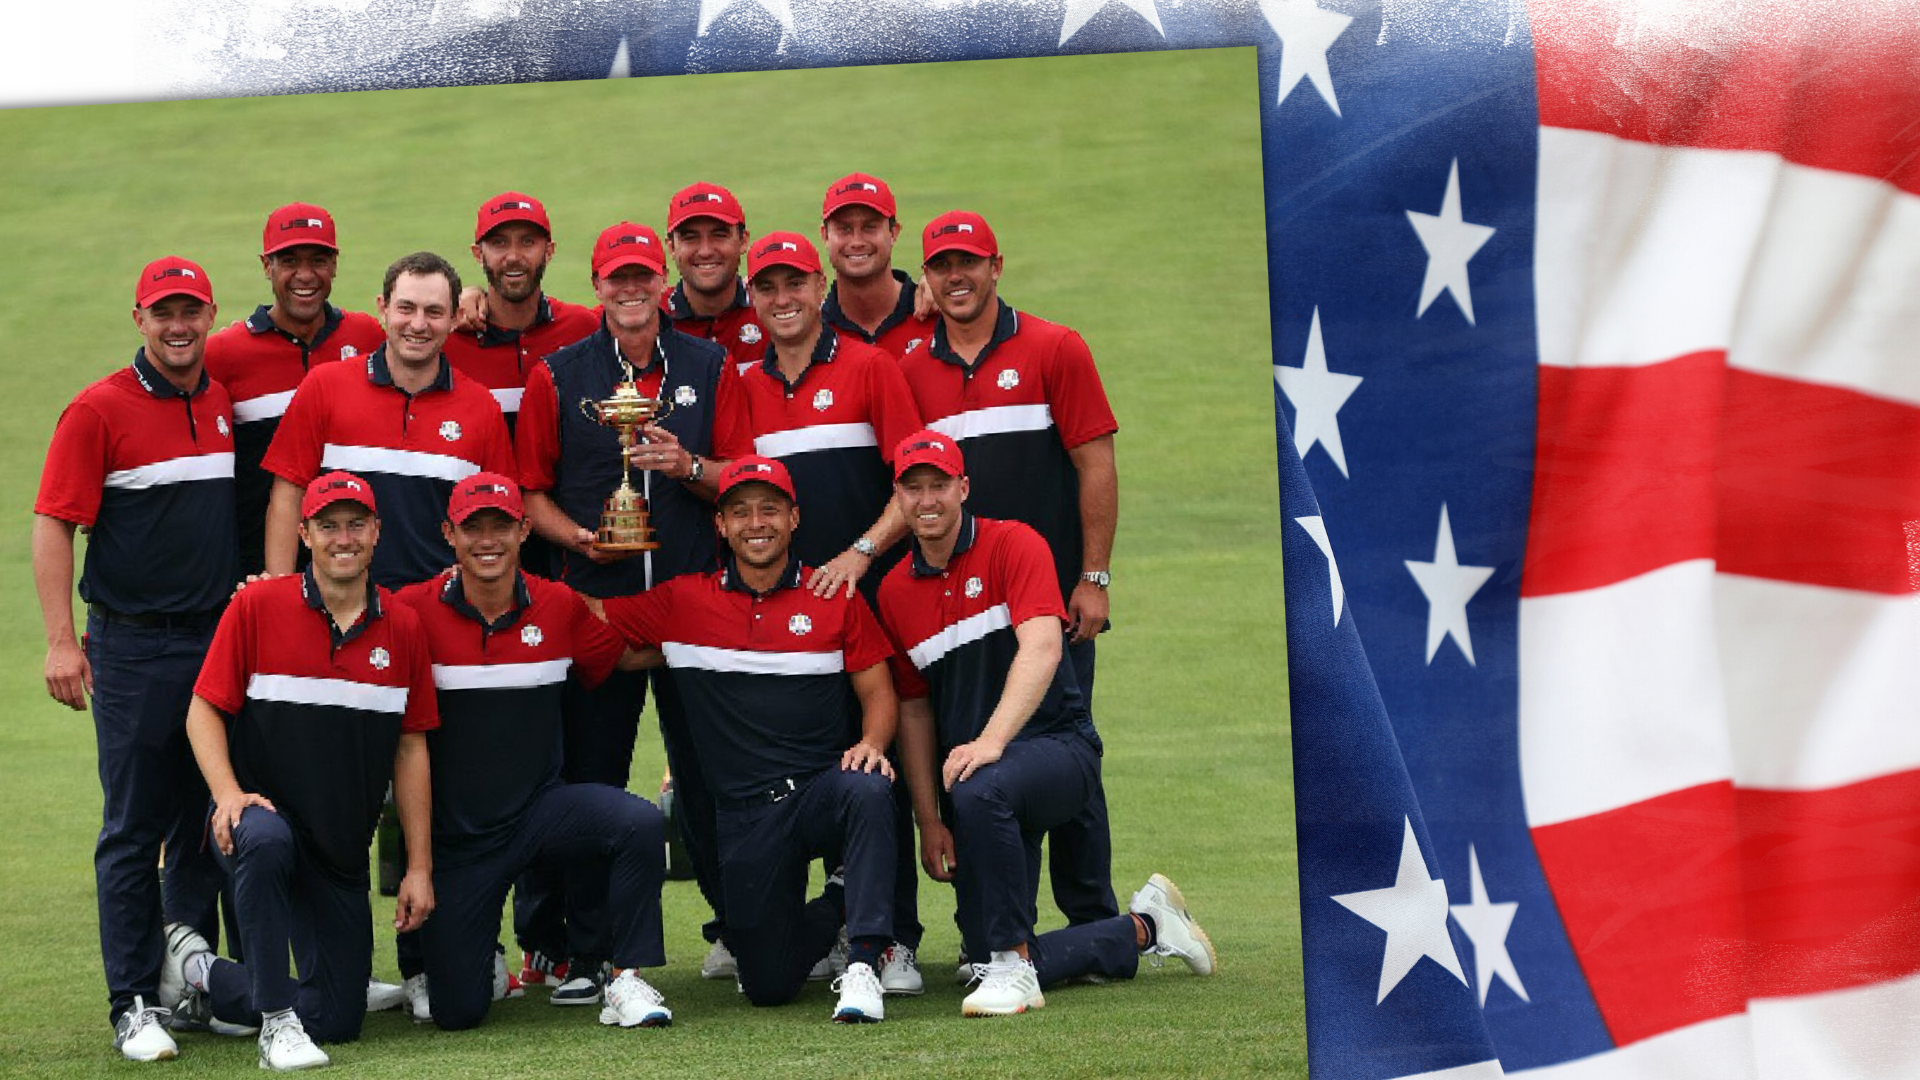 USA brings home to trophy